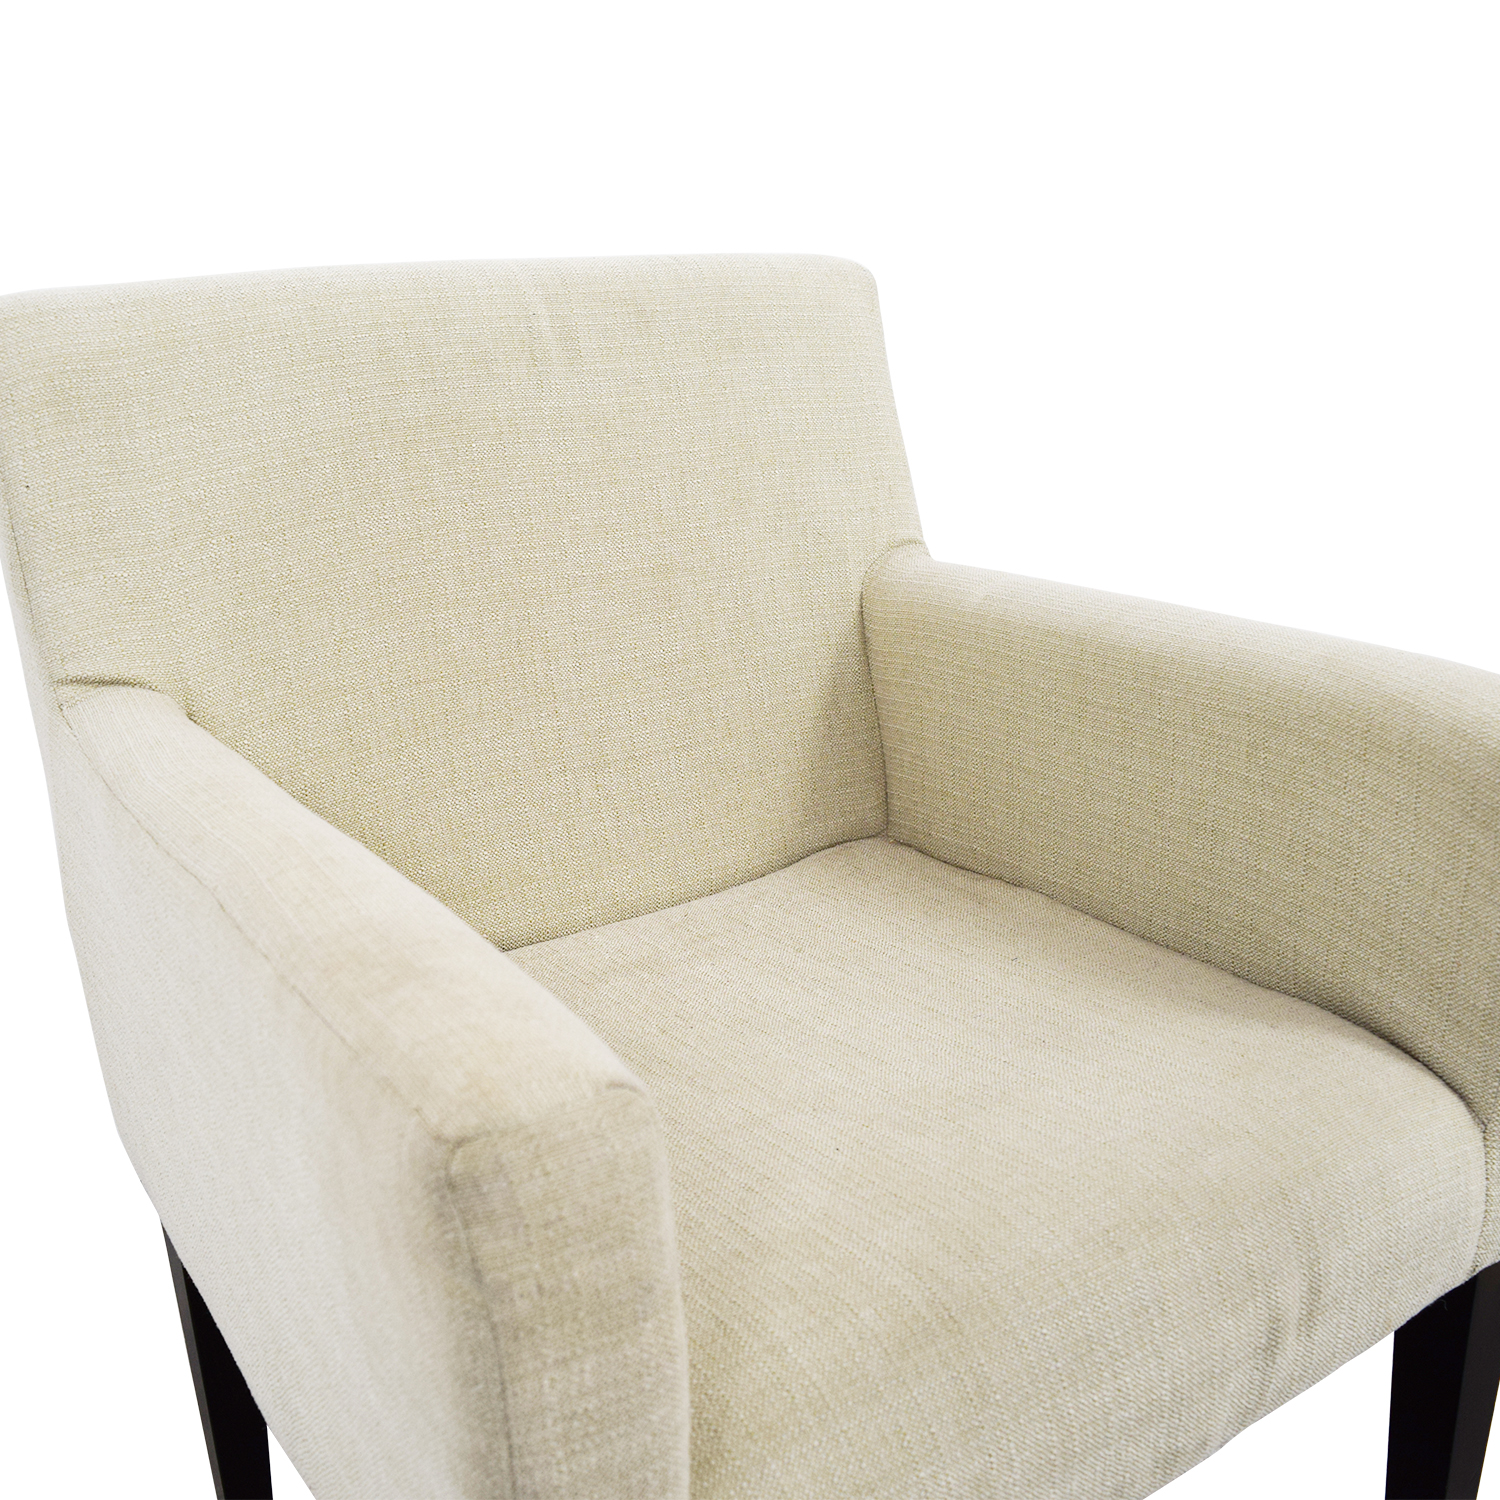 pottery barn chairs medicare lift 77 off dining room side chair